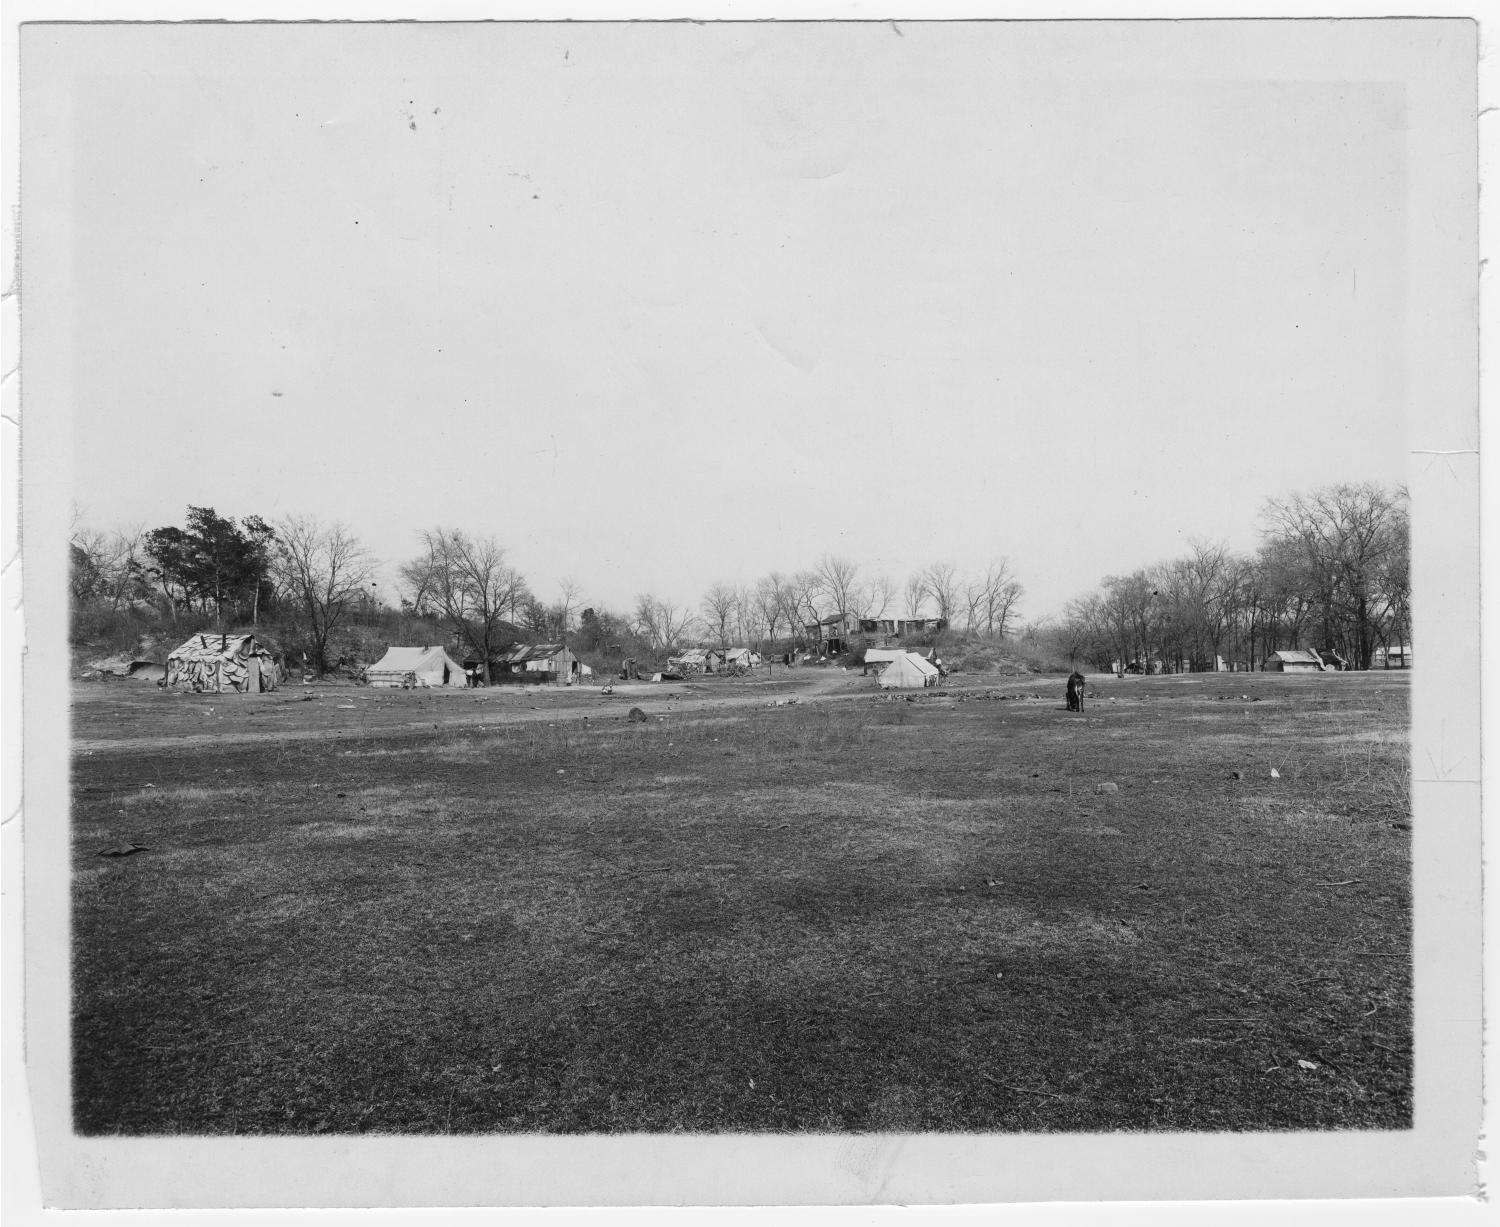 Photograph of Woodchuck Hill's hovels, 1910. Courtesy of Dallas Municipal Archives, provided by University of North Texas' Portal to Texas History.